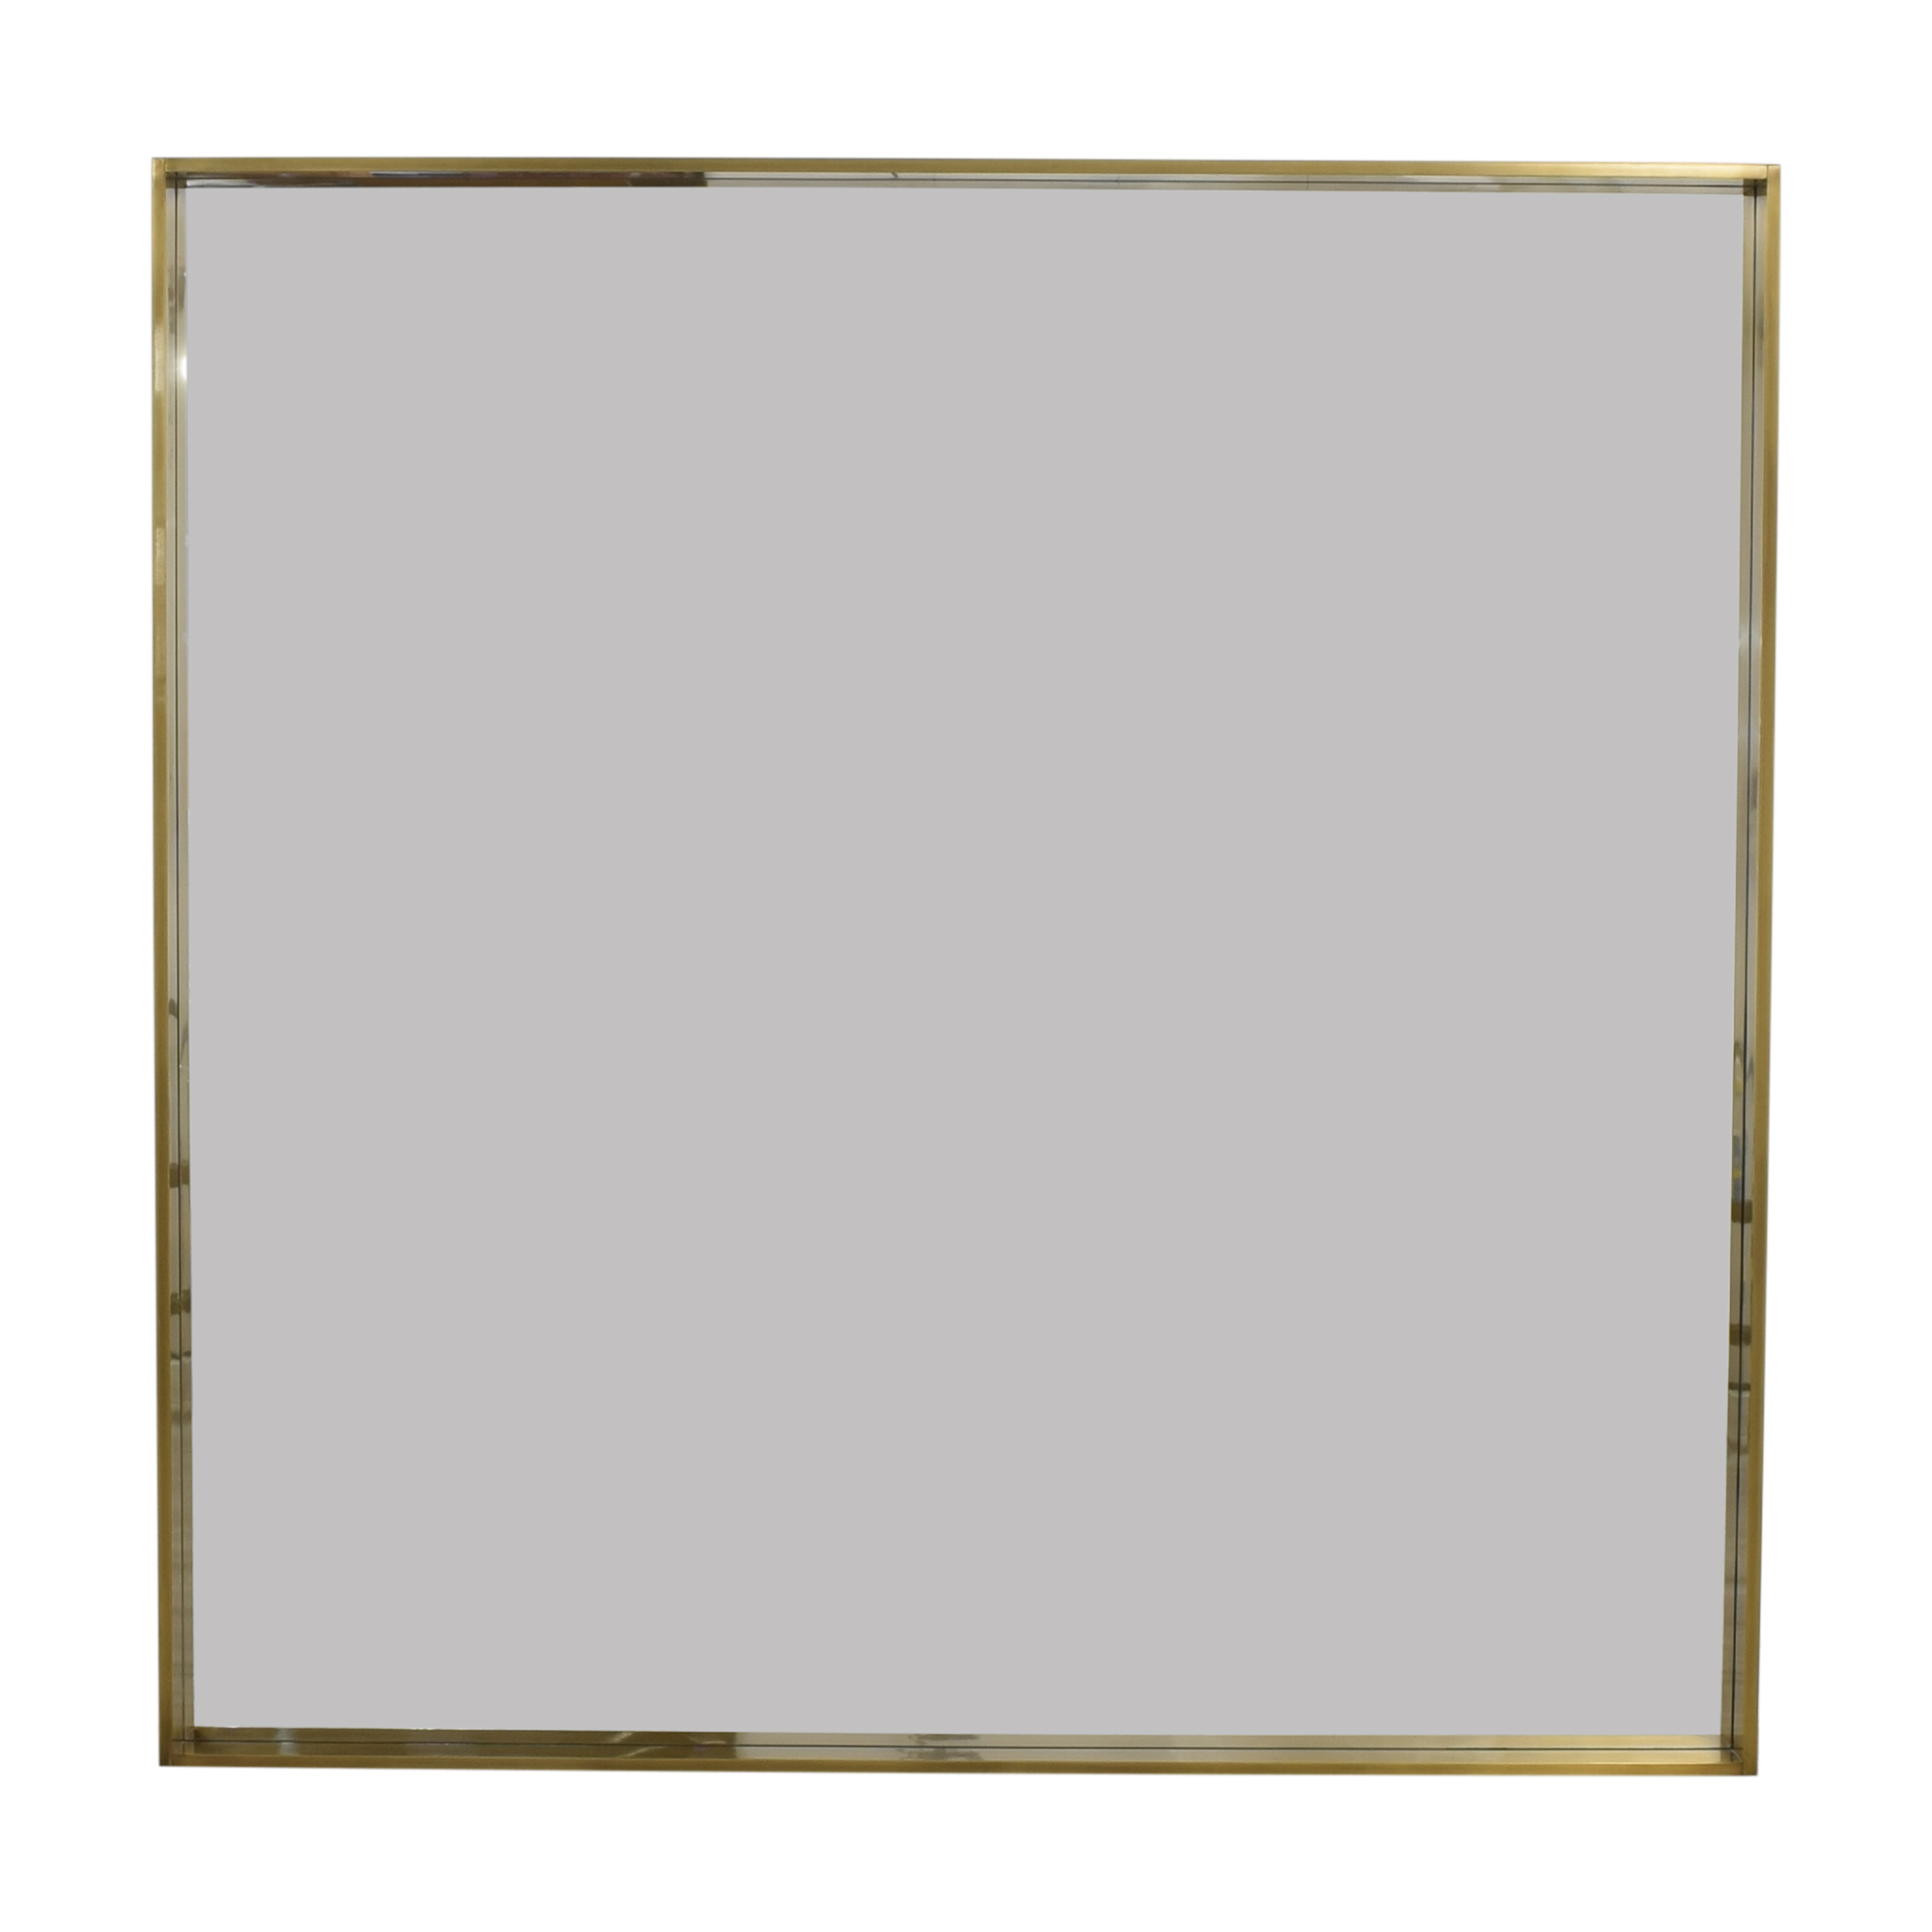 Restoration Hardware Restoration Hardware Metal Floating Mirror ma